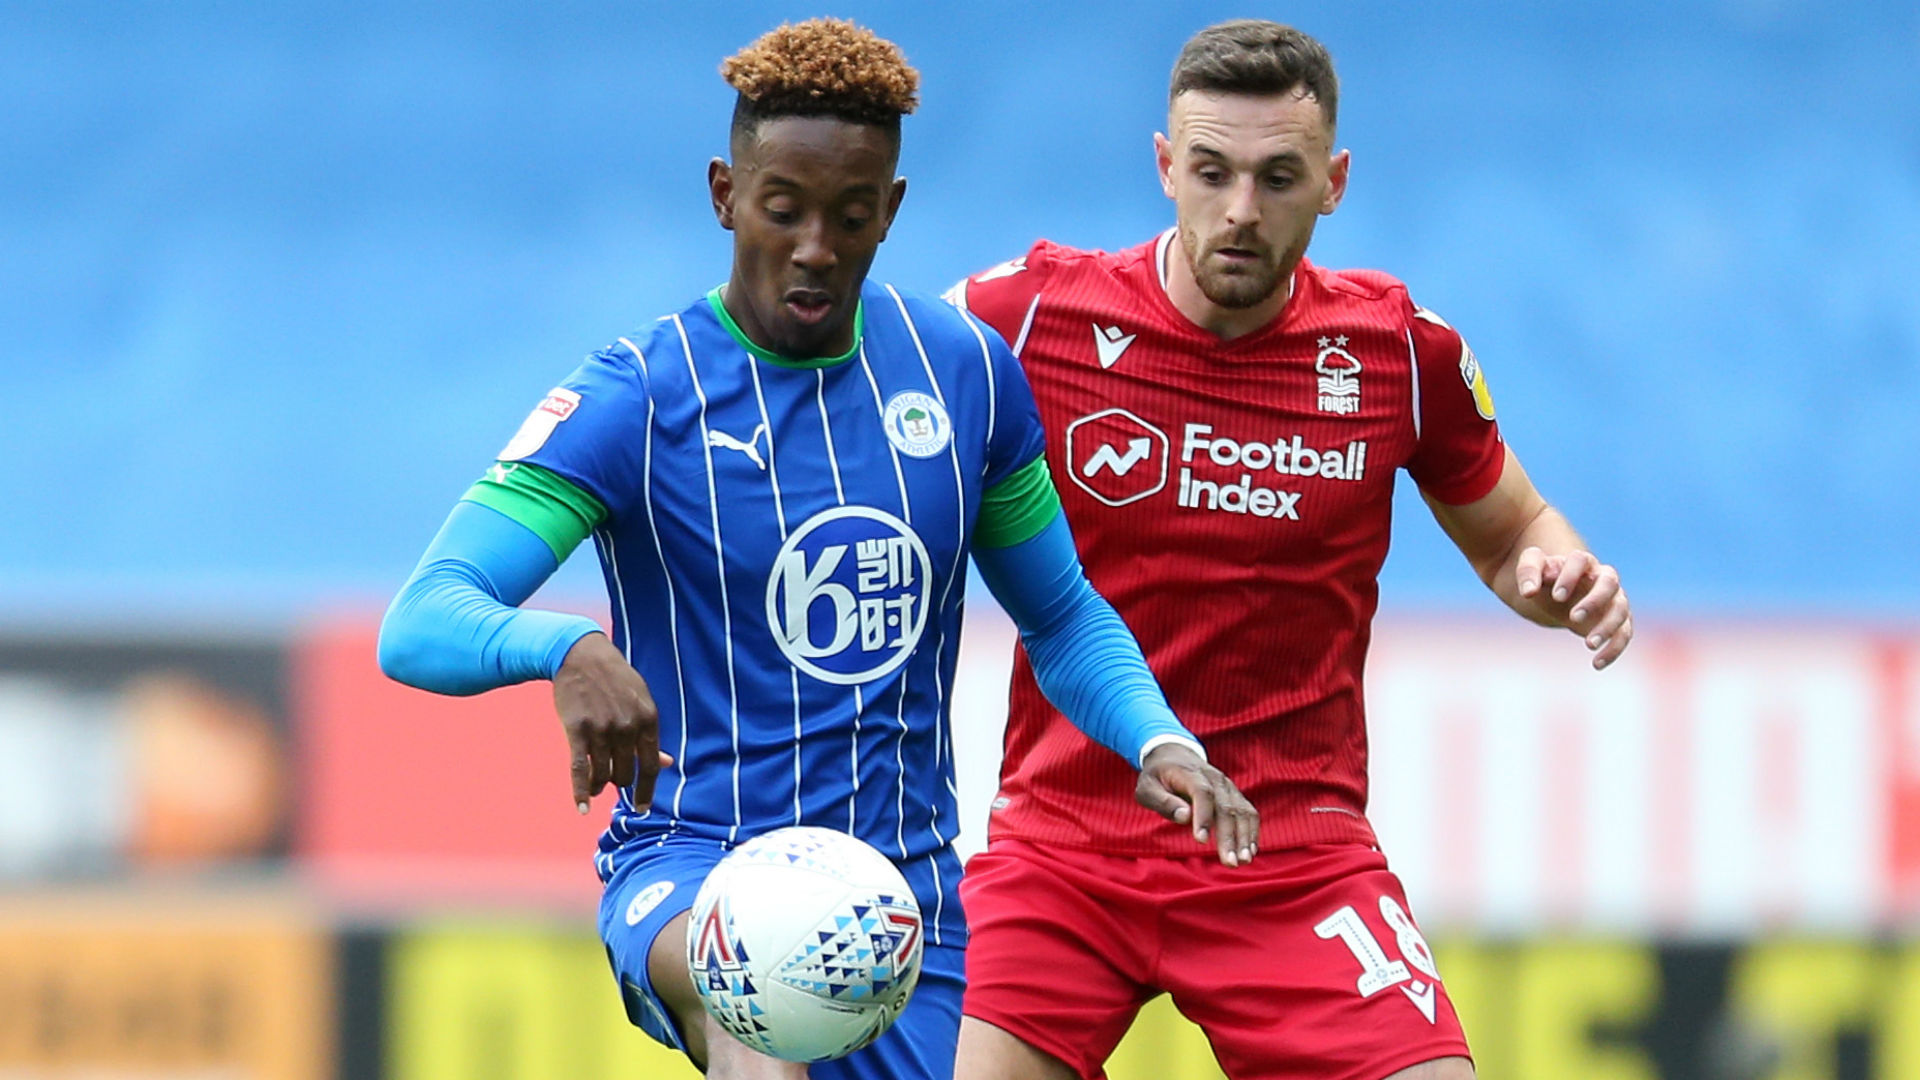 Wigan Athletic 1-0 Nottingham Forest: Lowe opens account to end unbeaten run